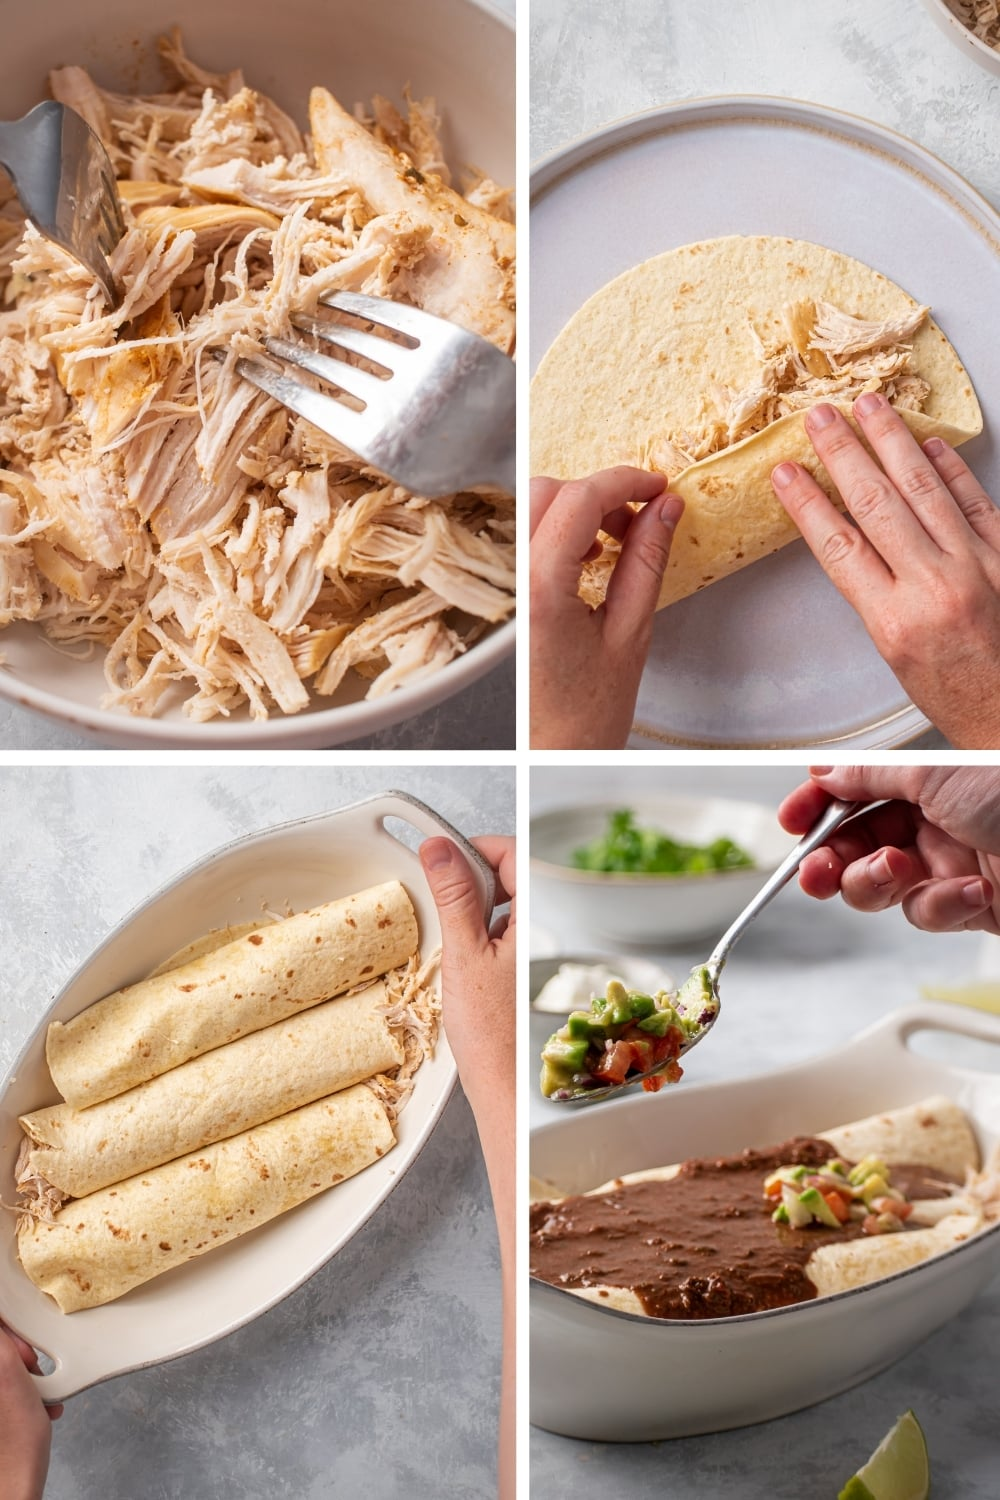 A four-way split picture showing the process of assembling chicken enchiladas.